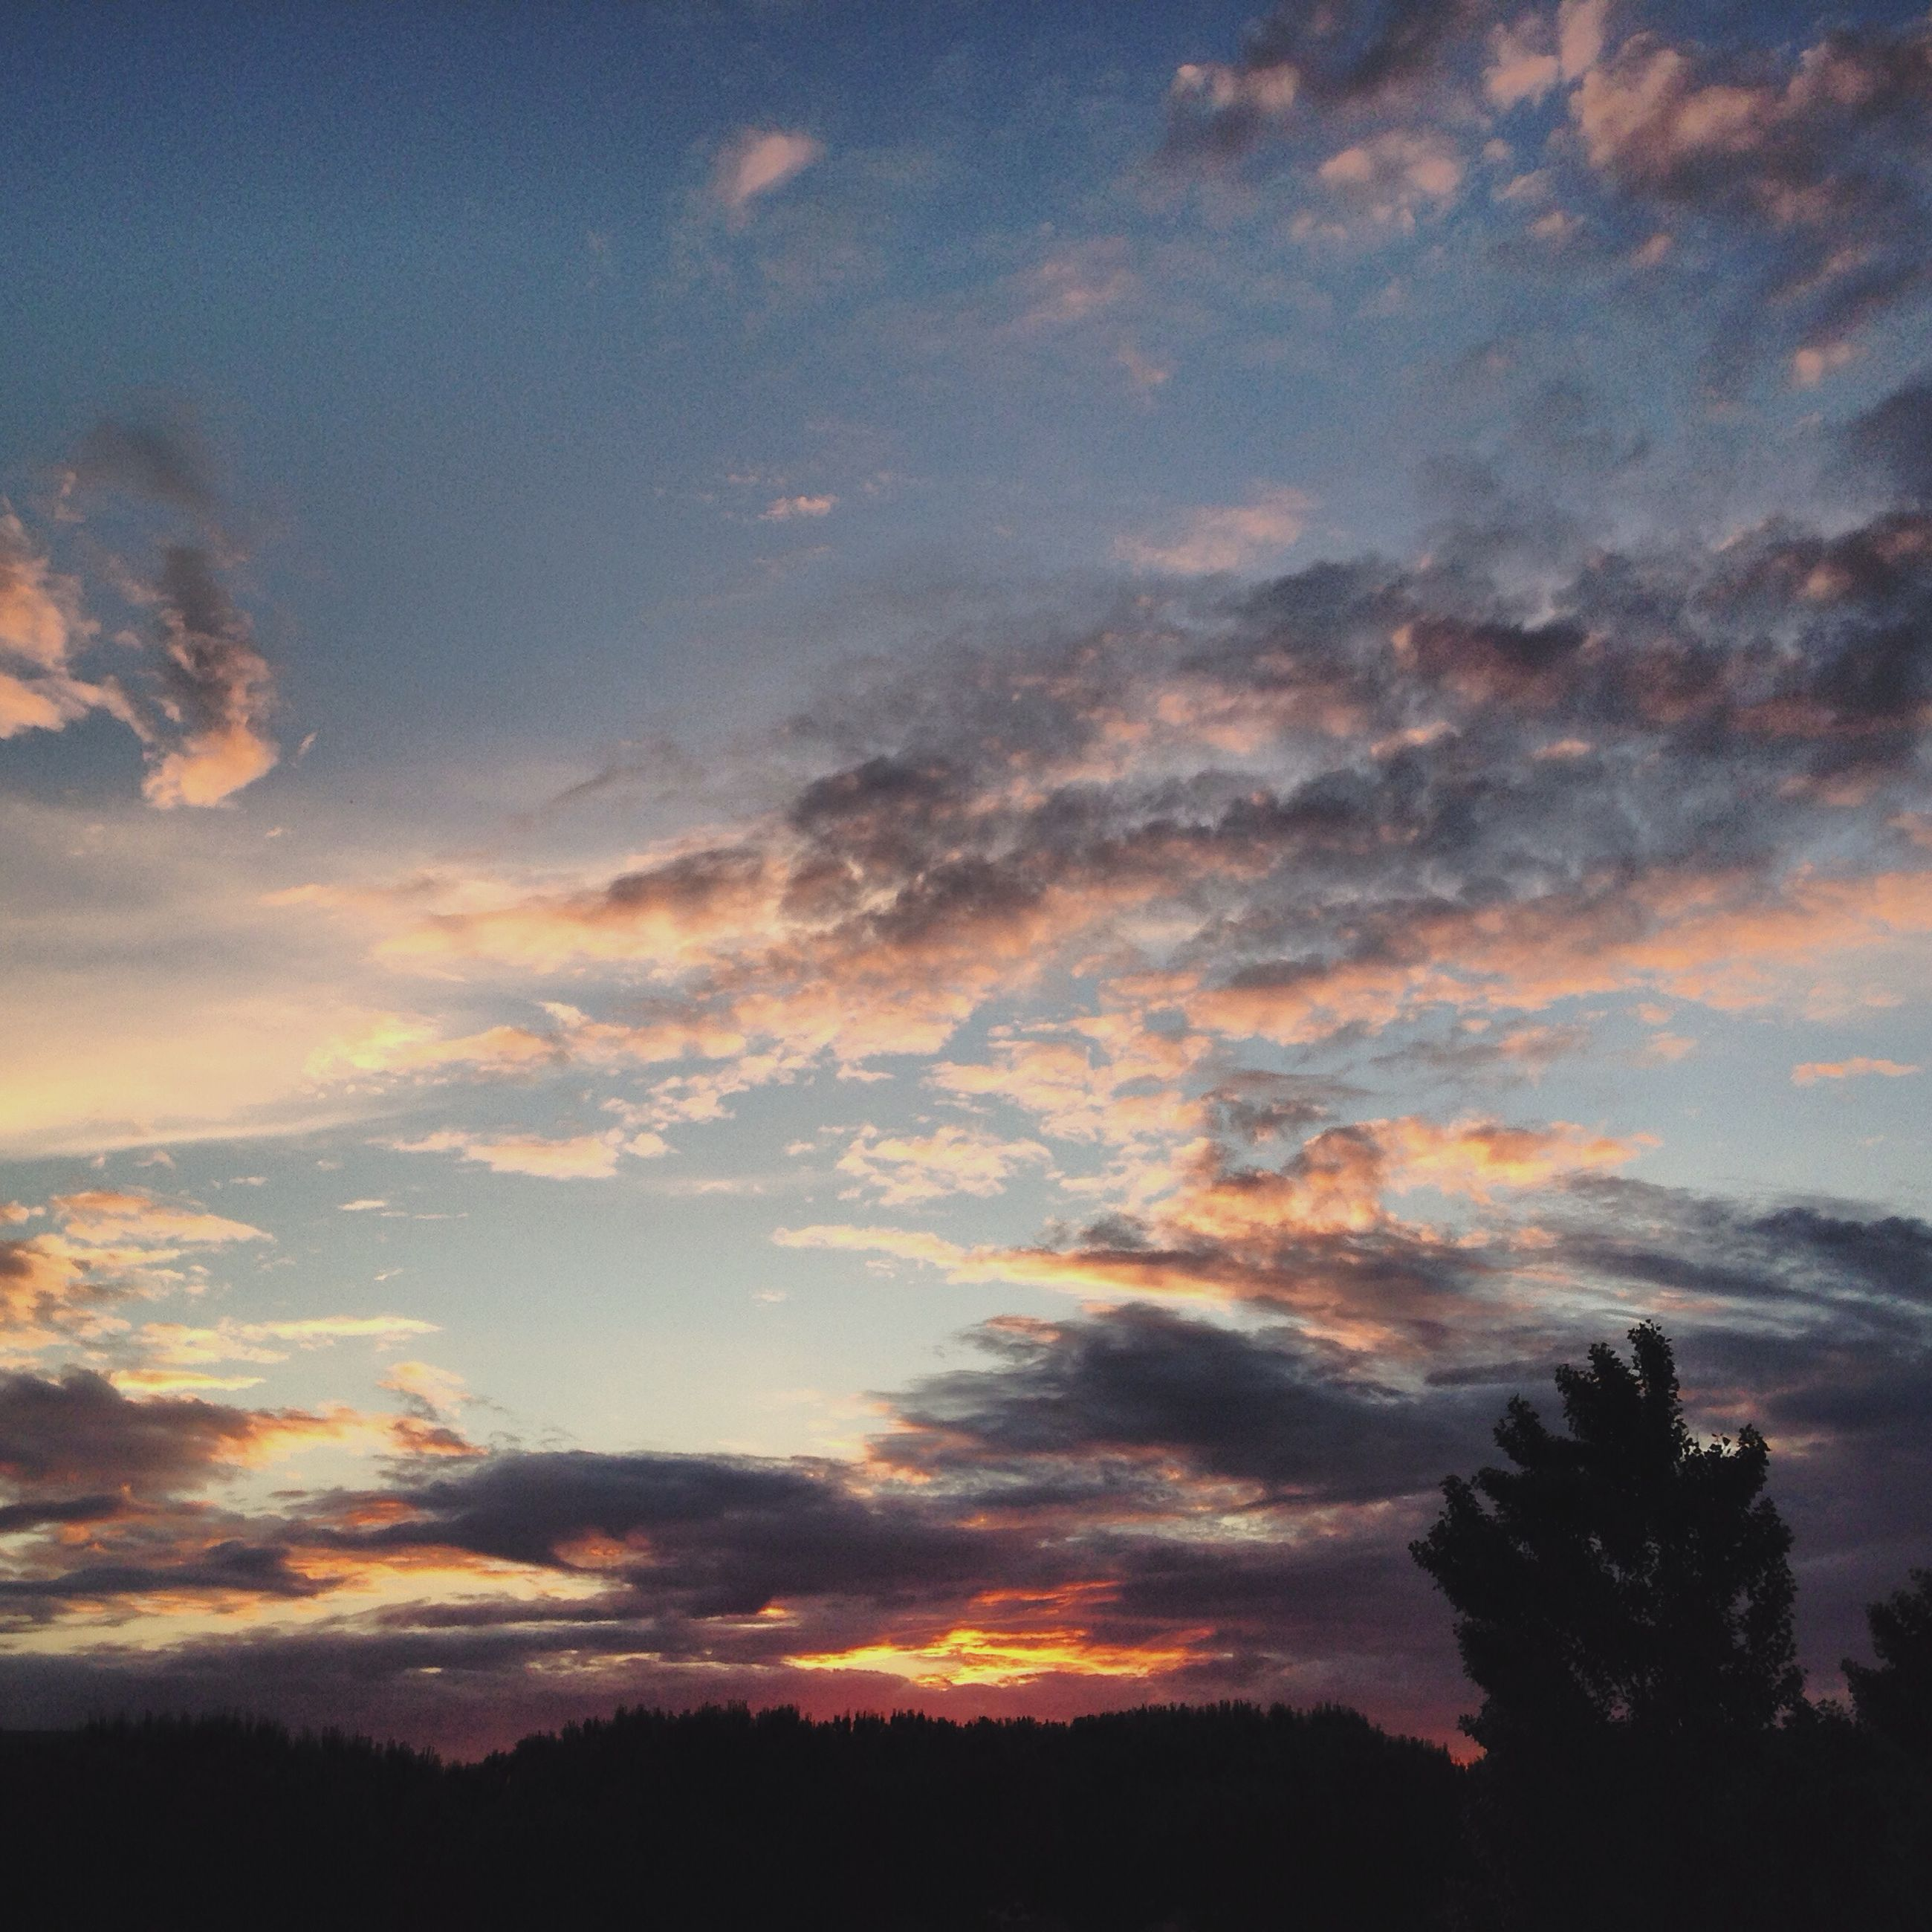 sunset, silhouette, sky, scenics, tranquility, beauty in nature, tranquil scene, cloud - sky, tree, nature, idyllic, orange color, dramatic sky, cloud, low angle view, cloudy, landscape, outdoors, no people, dusk